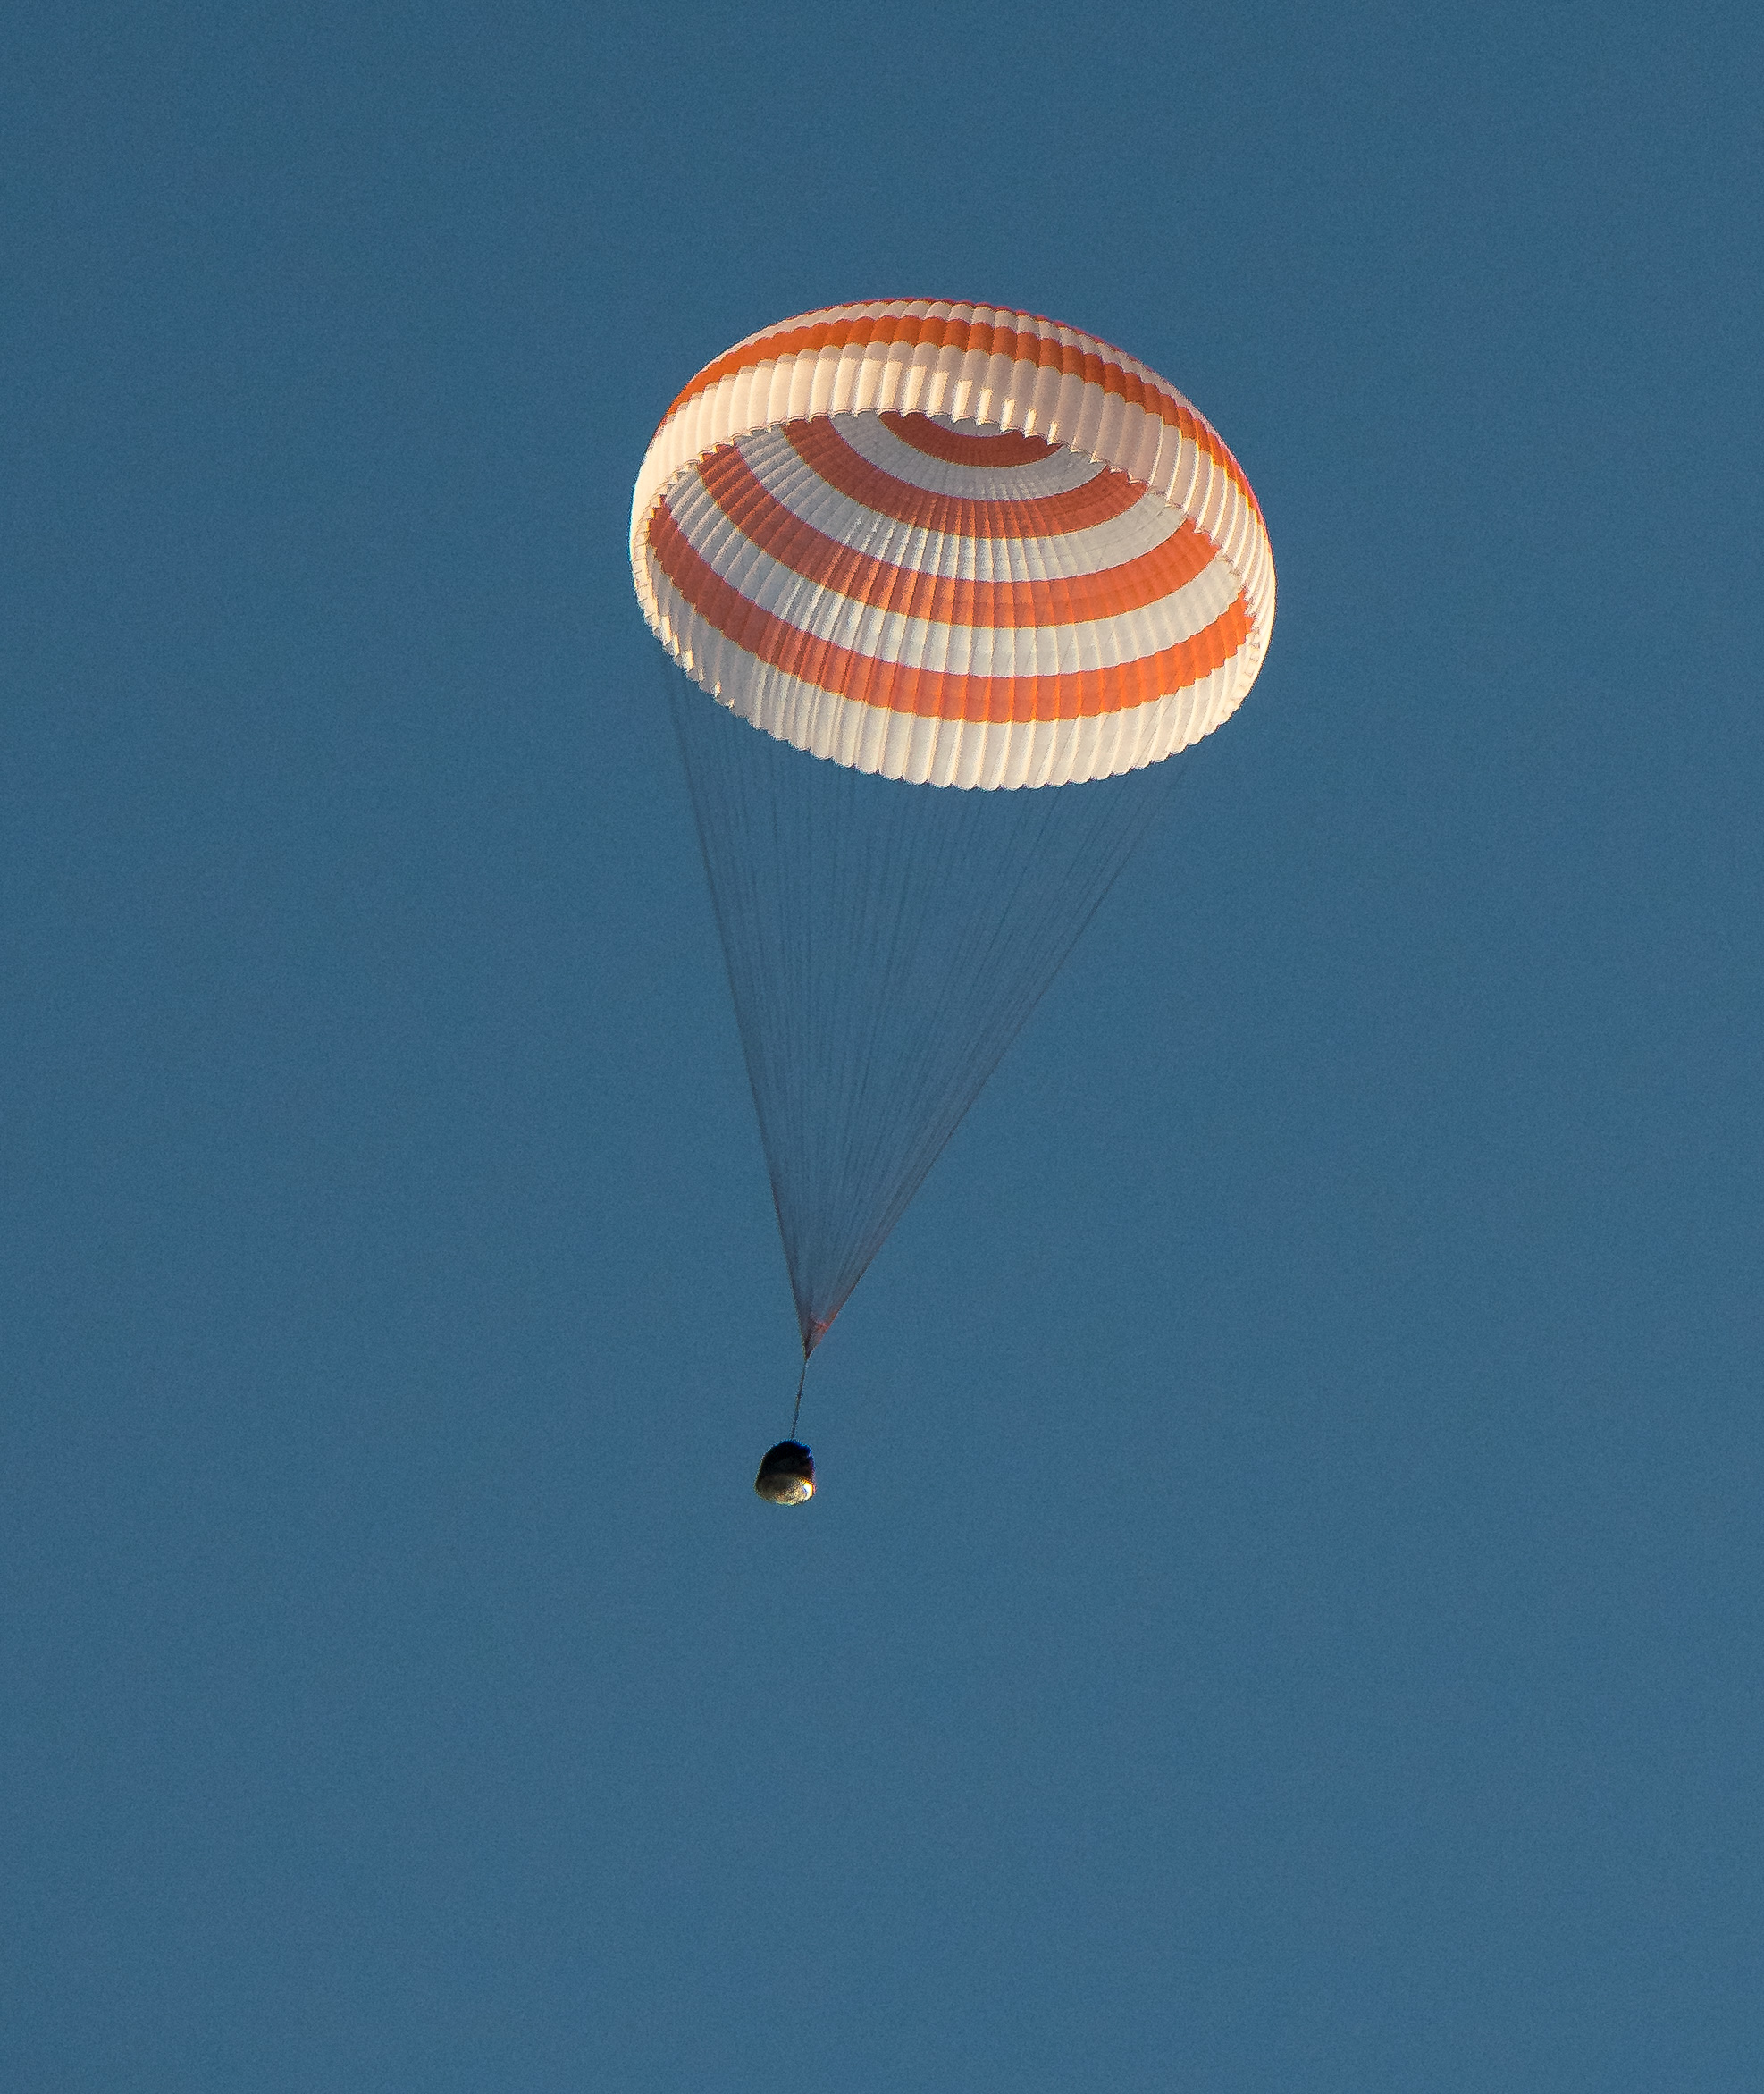 The Soyuz MS-04 capsule descends under its single main parachute. Photo Credit: Bill Ingalls / NASA